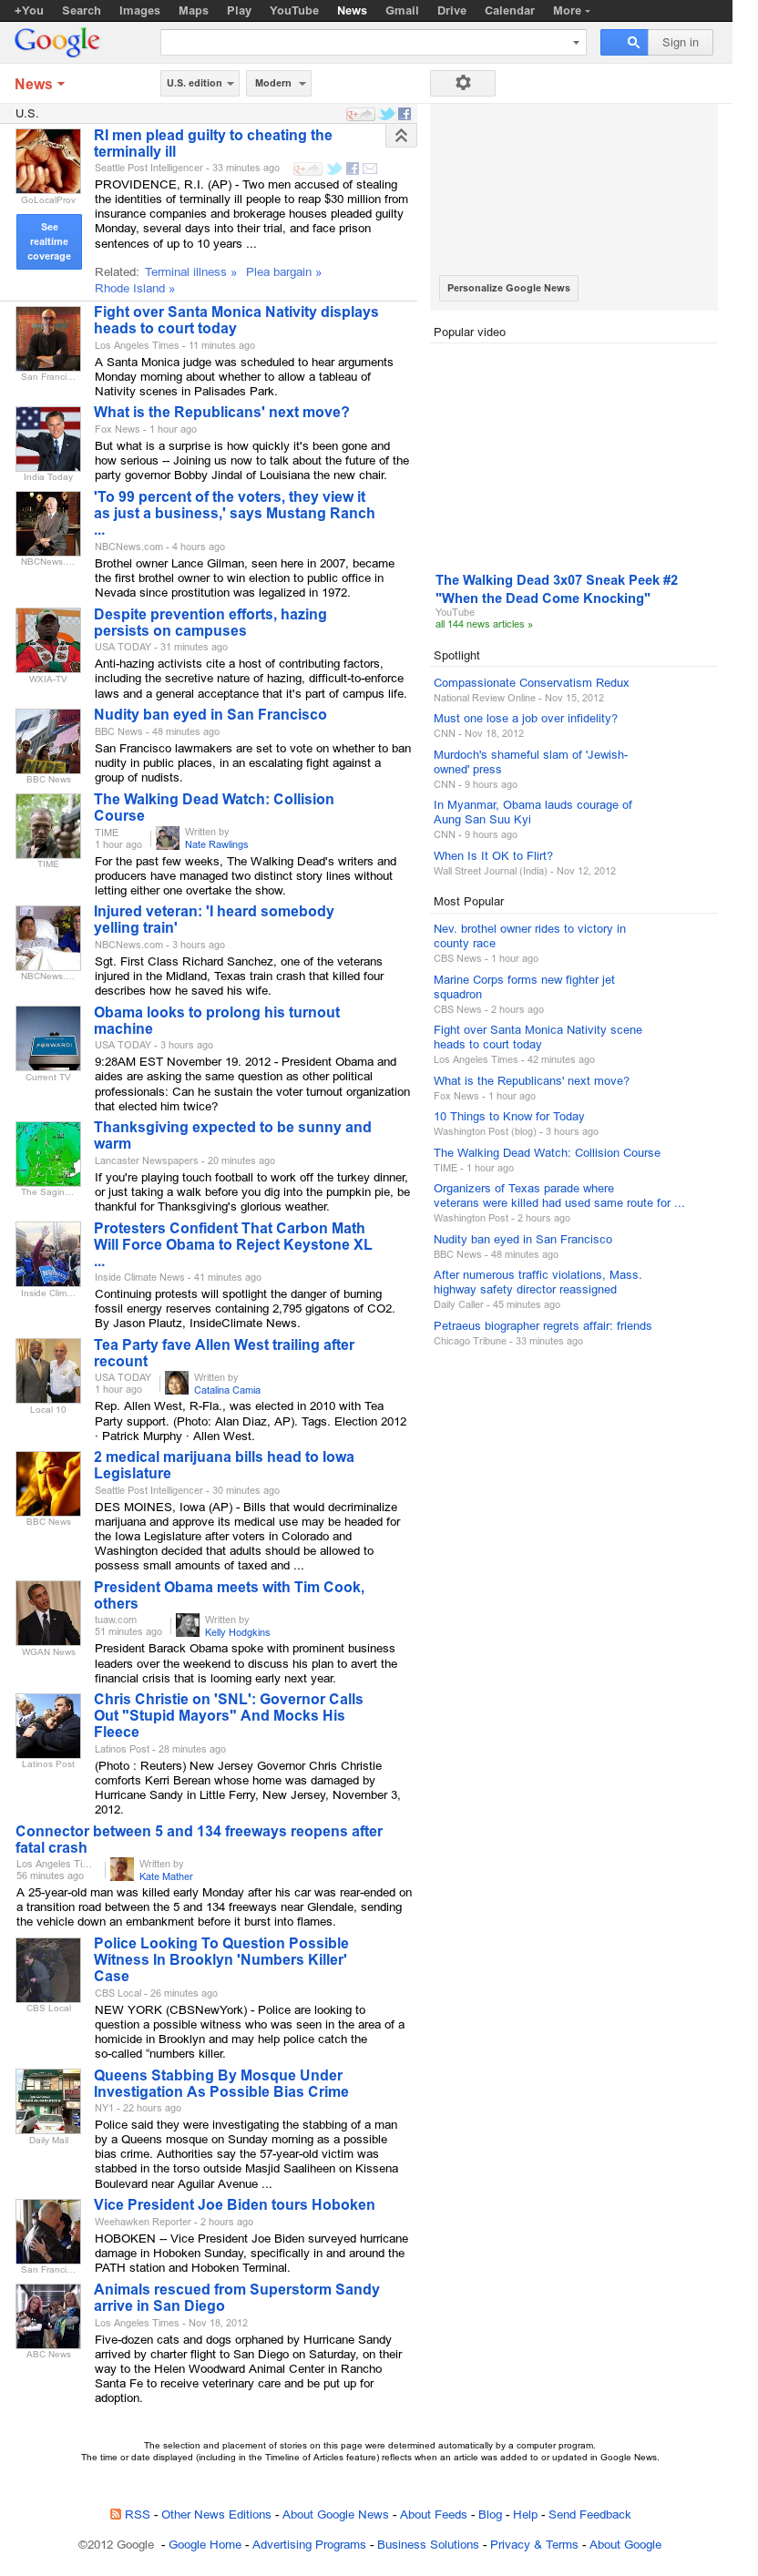 Google News: U.S. at Monday Nov. 19, 2012, 5:13 p.m. UTC